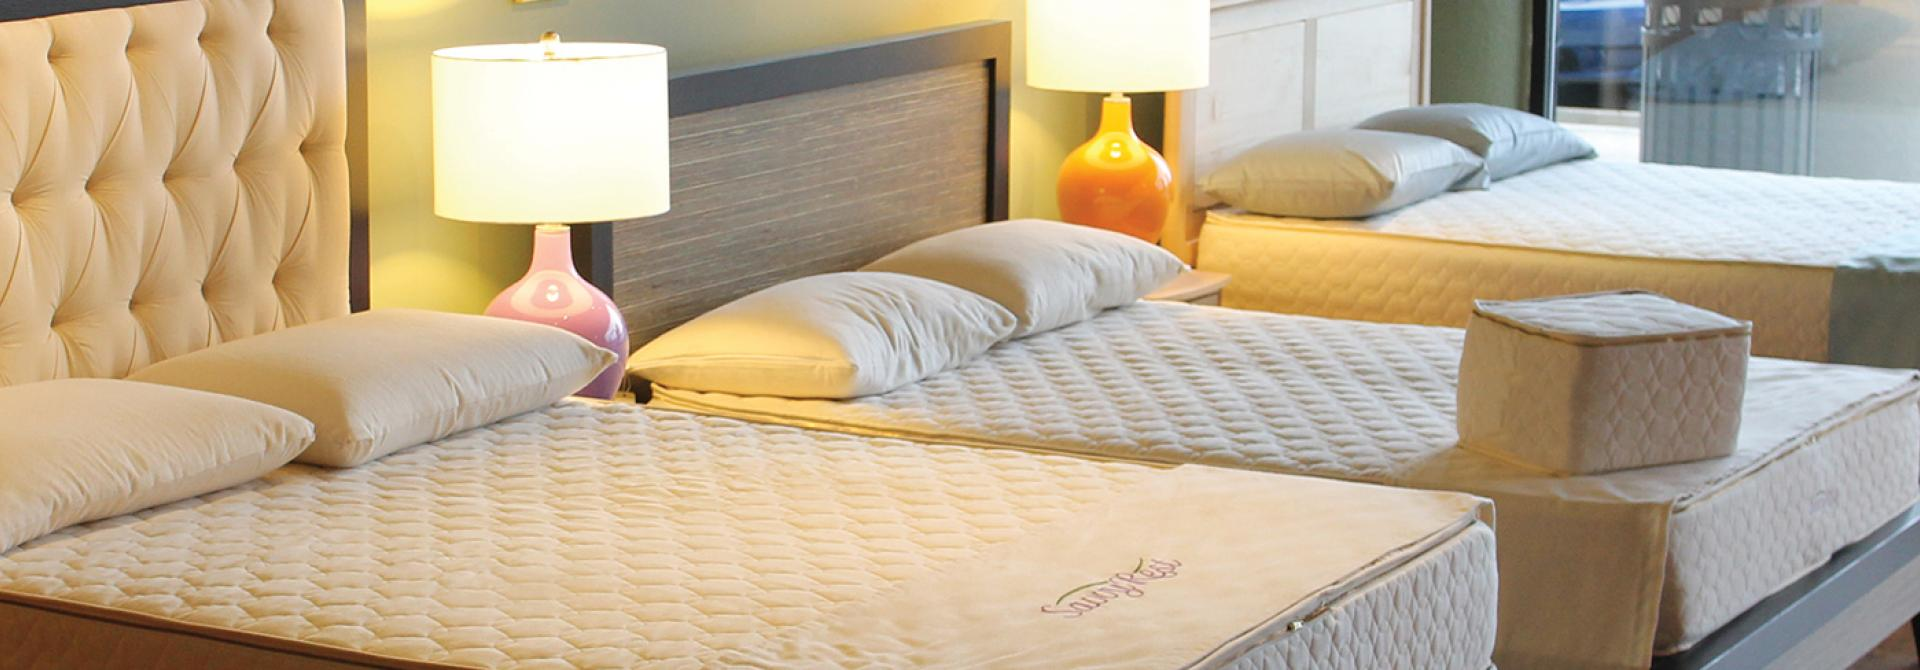 organic mattresses in the dc metro area savvy rest natural bedroom